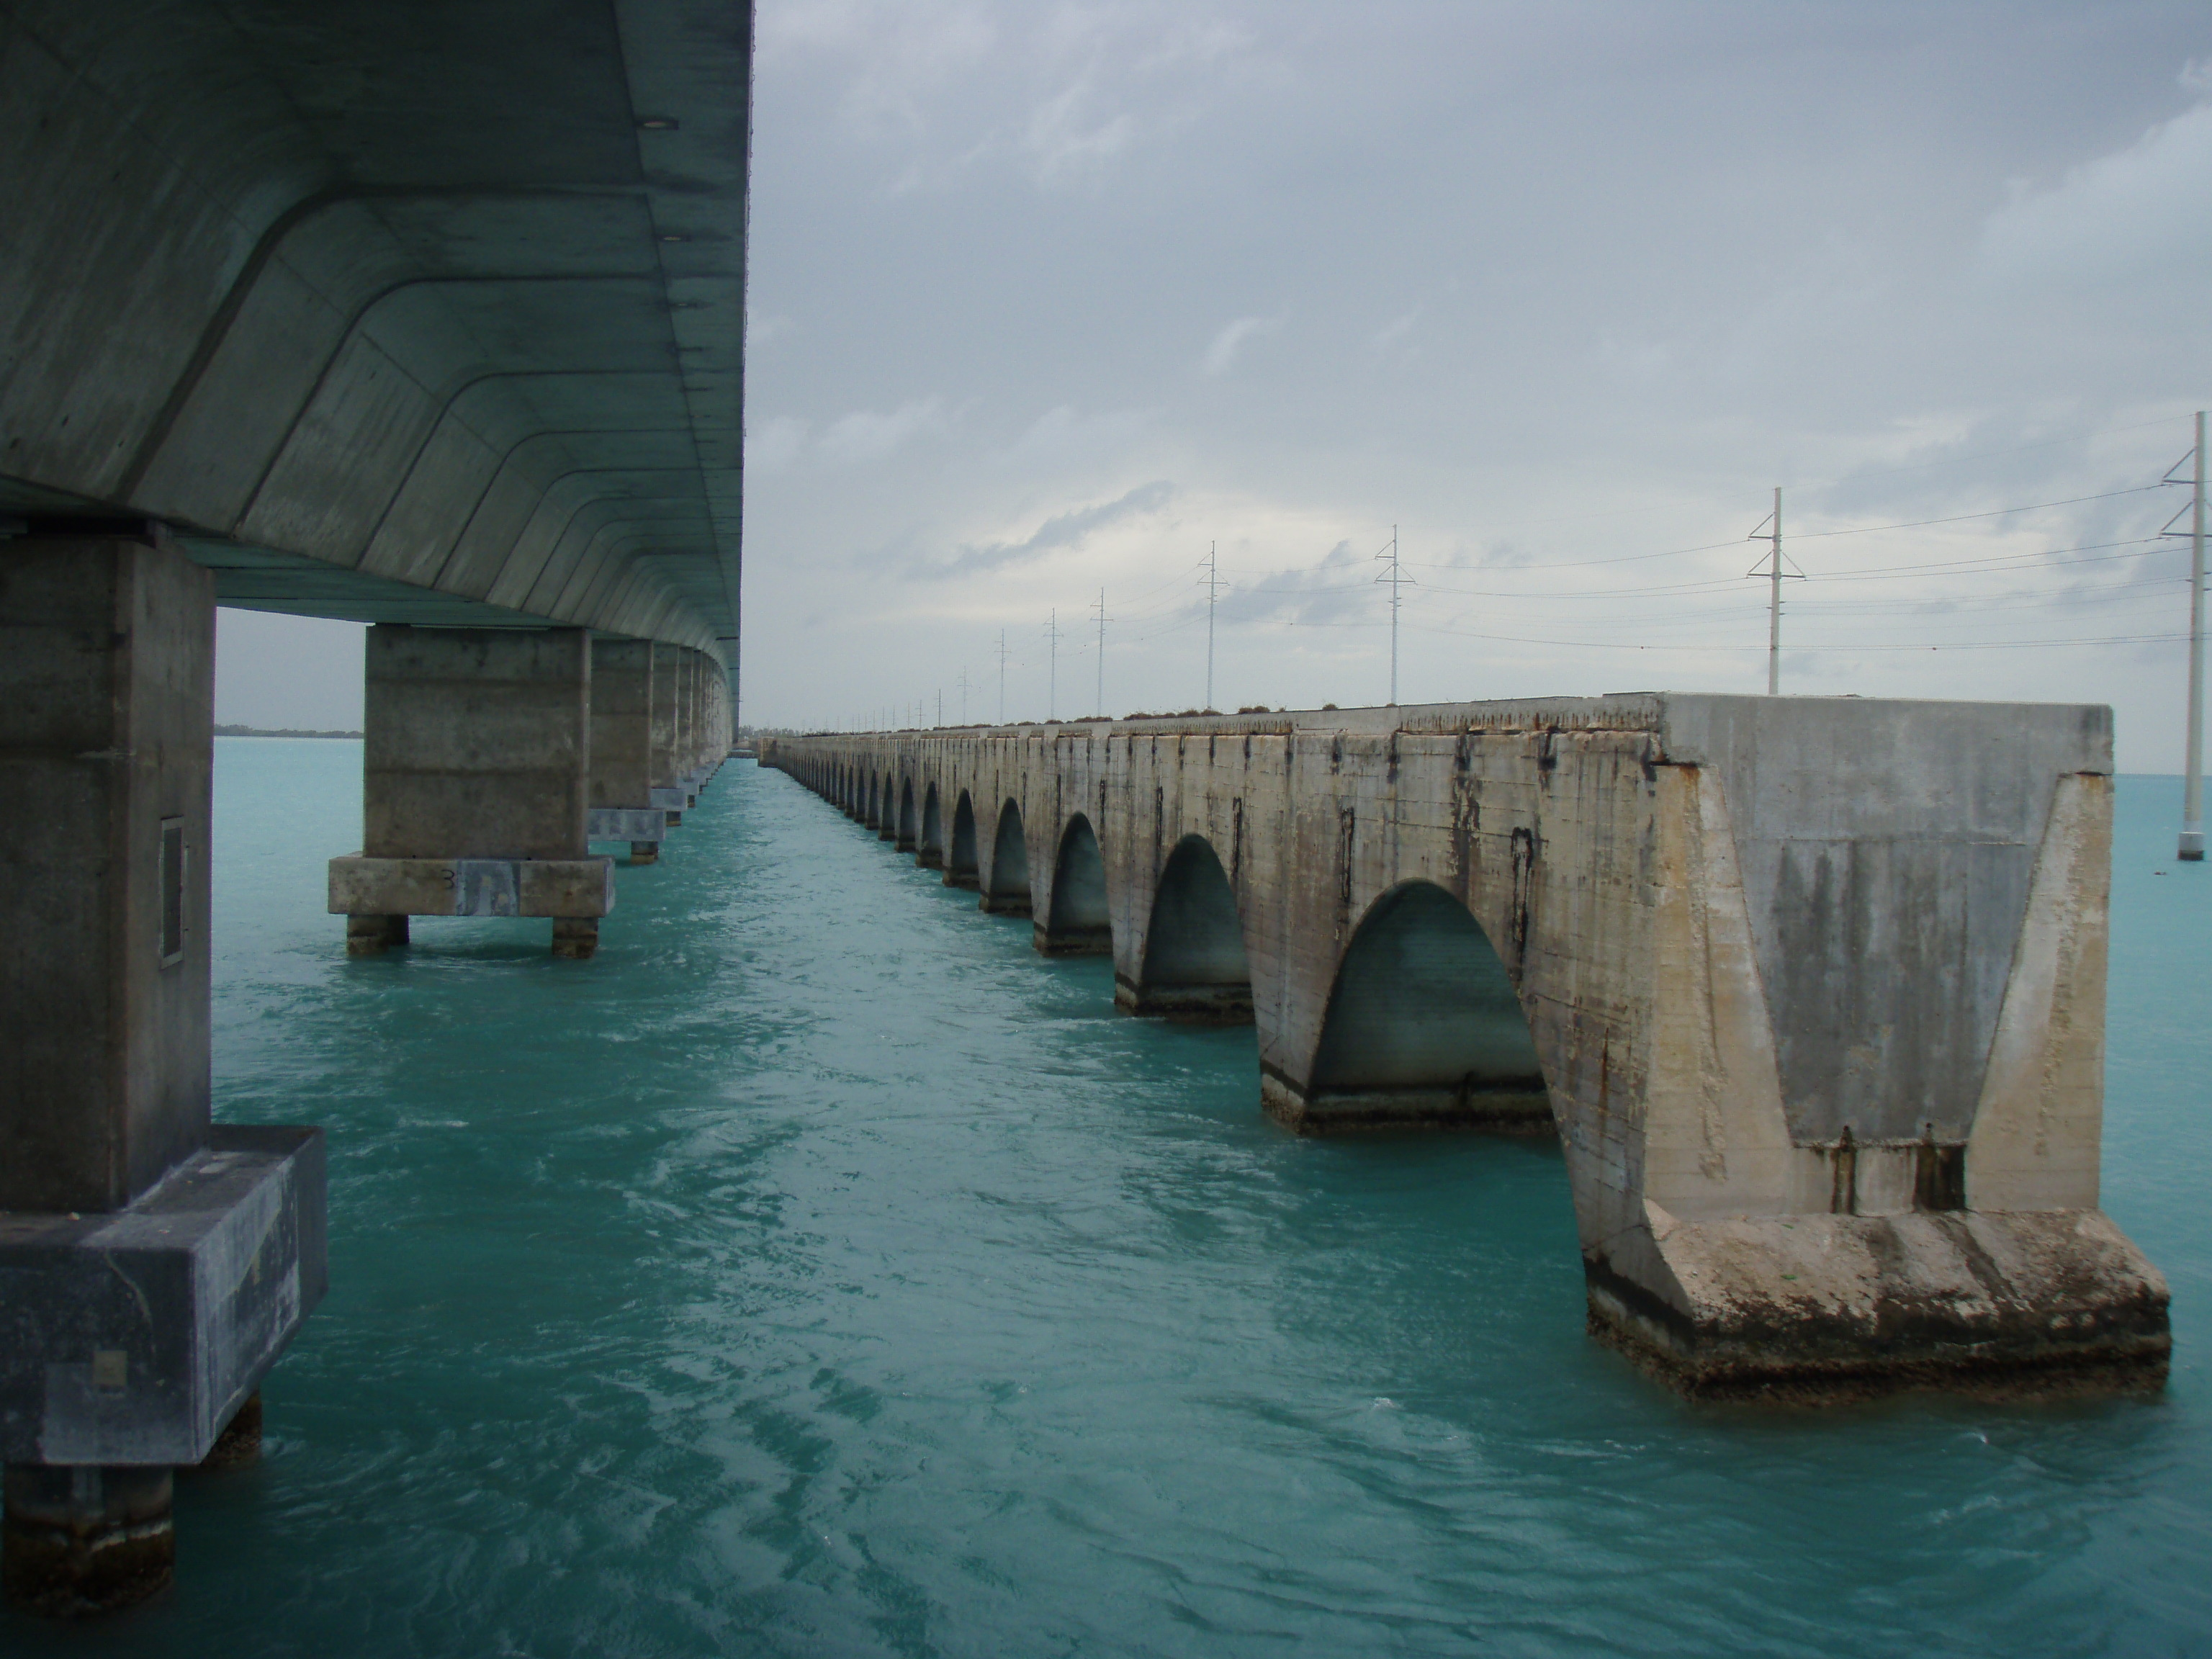 Two bridges on the w:Overseas Highway within the Florida Keys. The bridge on the left is the modern highway bridge, while the bridge on the right is the original bridge built by the Florida East Coast Railway, retrofitted to automobile traffic after 1935, and later closed.